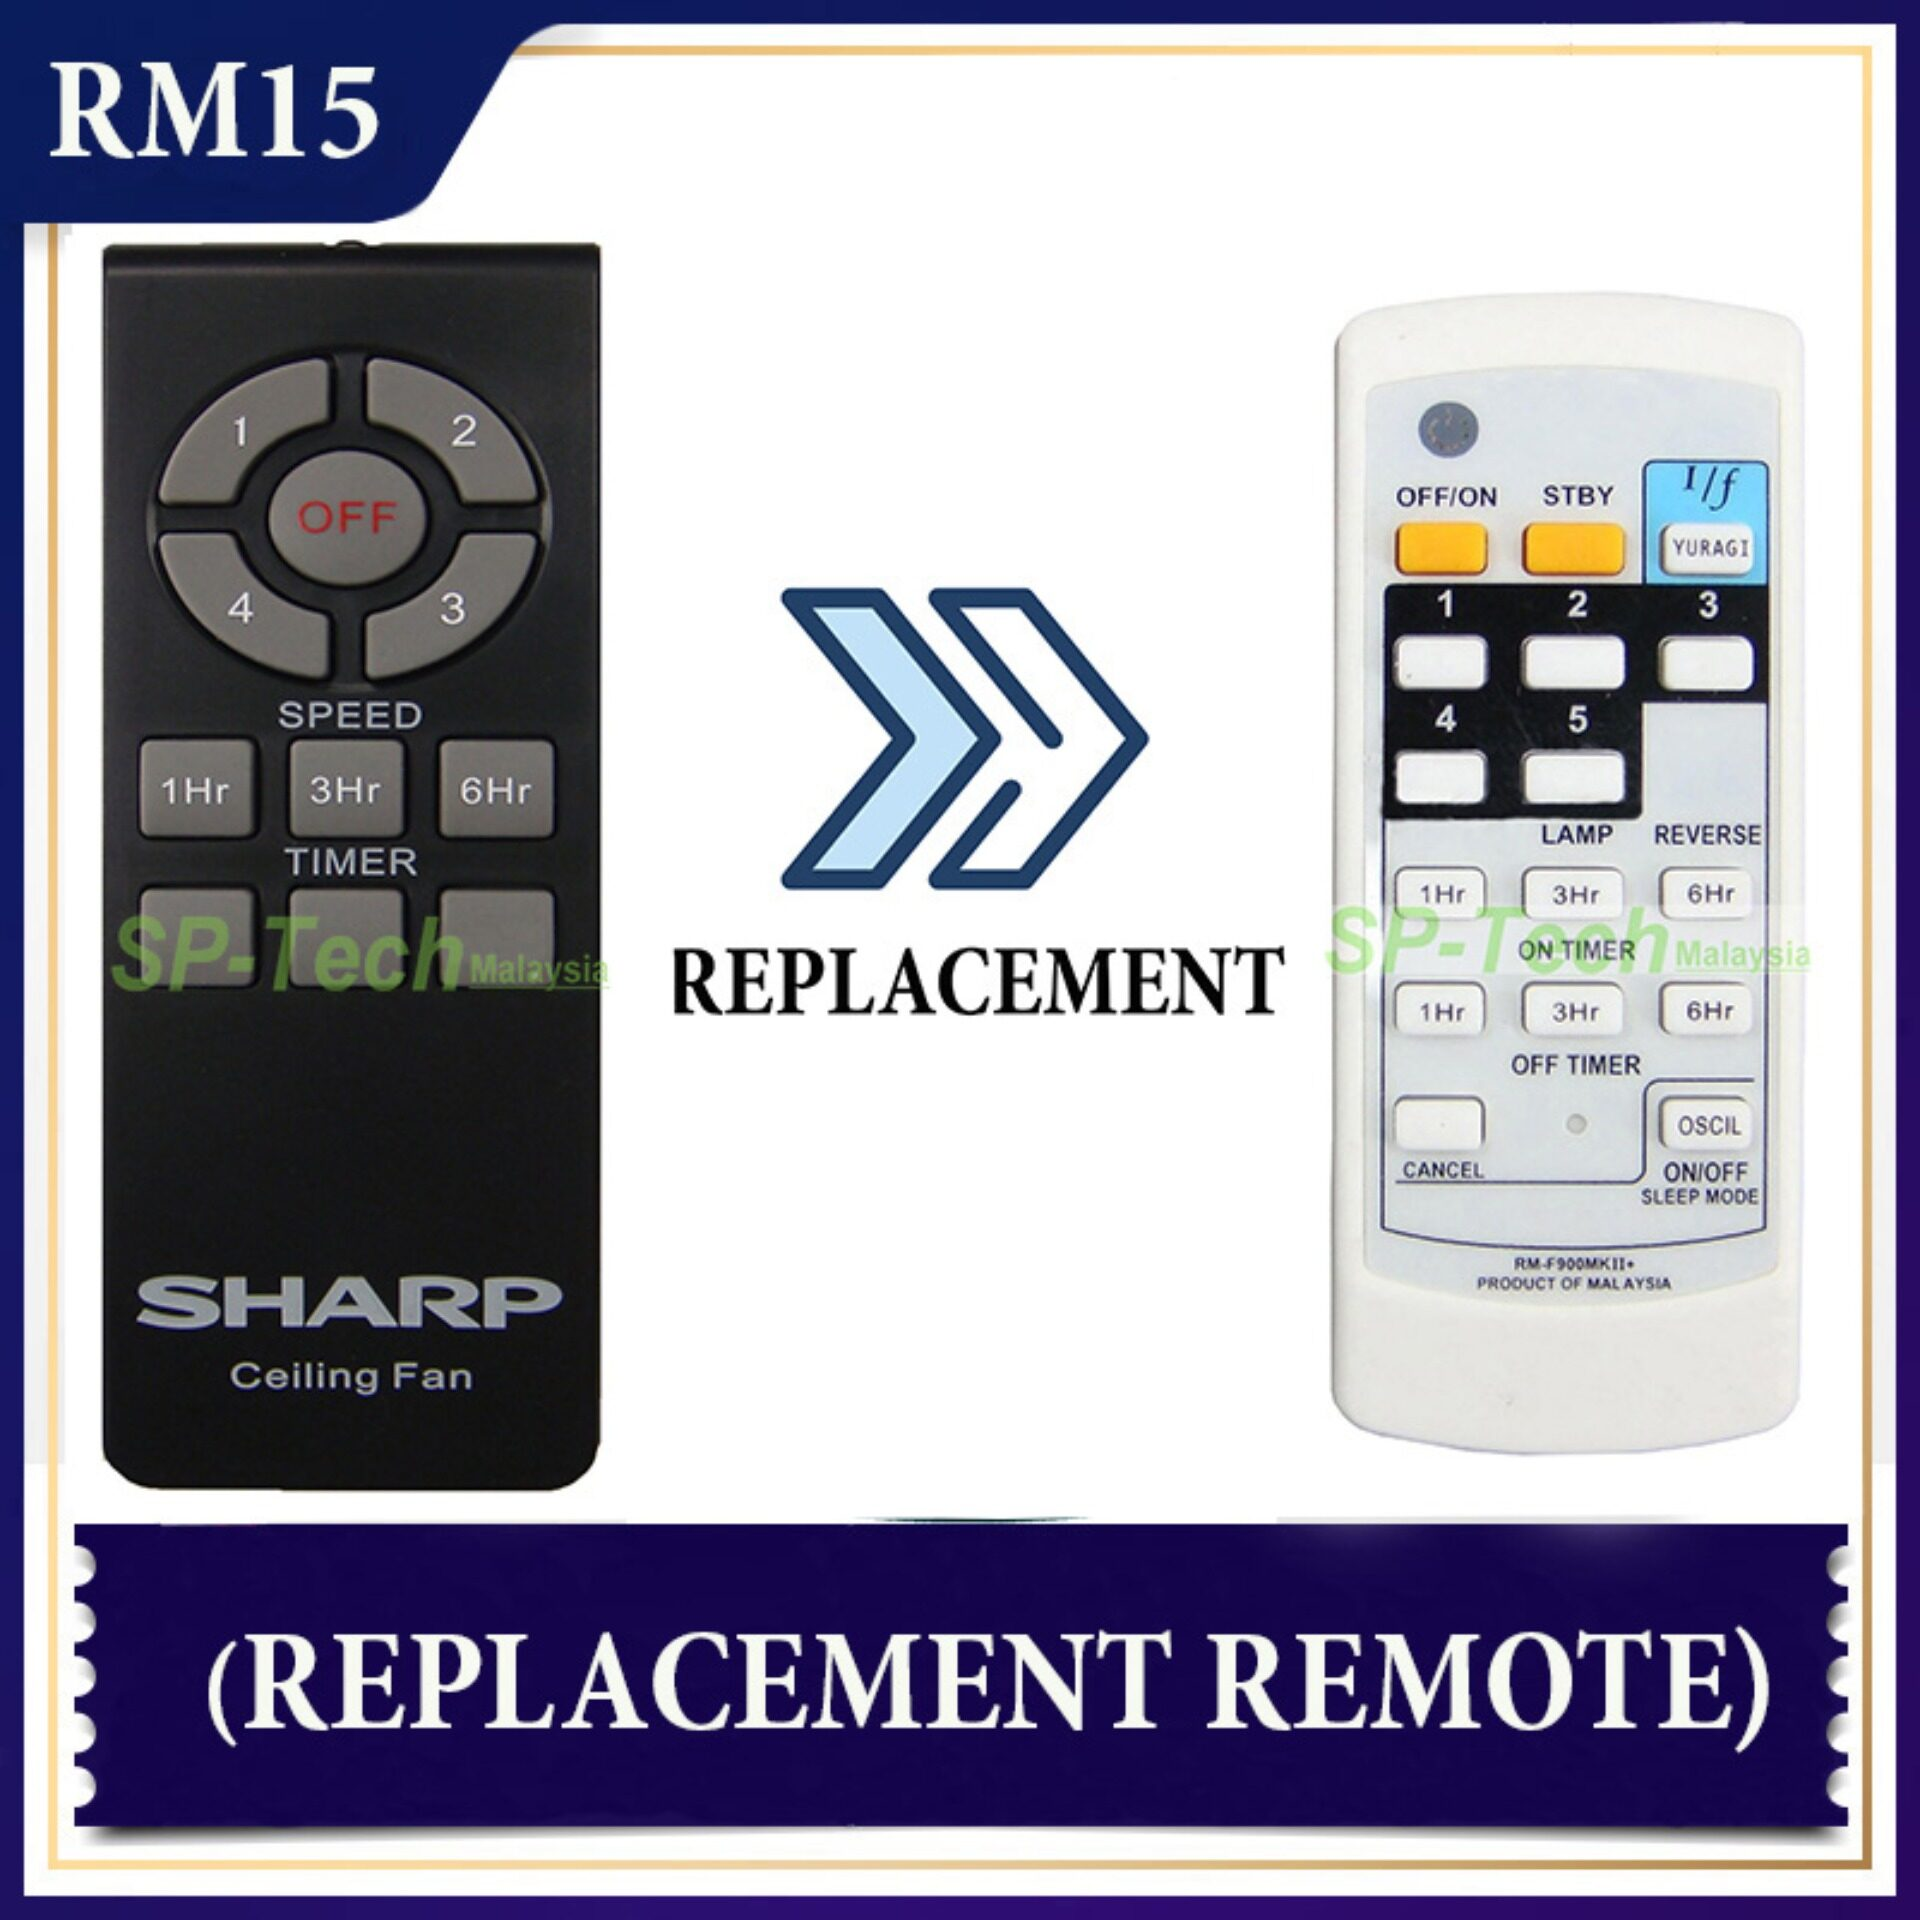 SHARP PJCB156-3S FAN REMOTE CONTROL (REPLACEMENT)